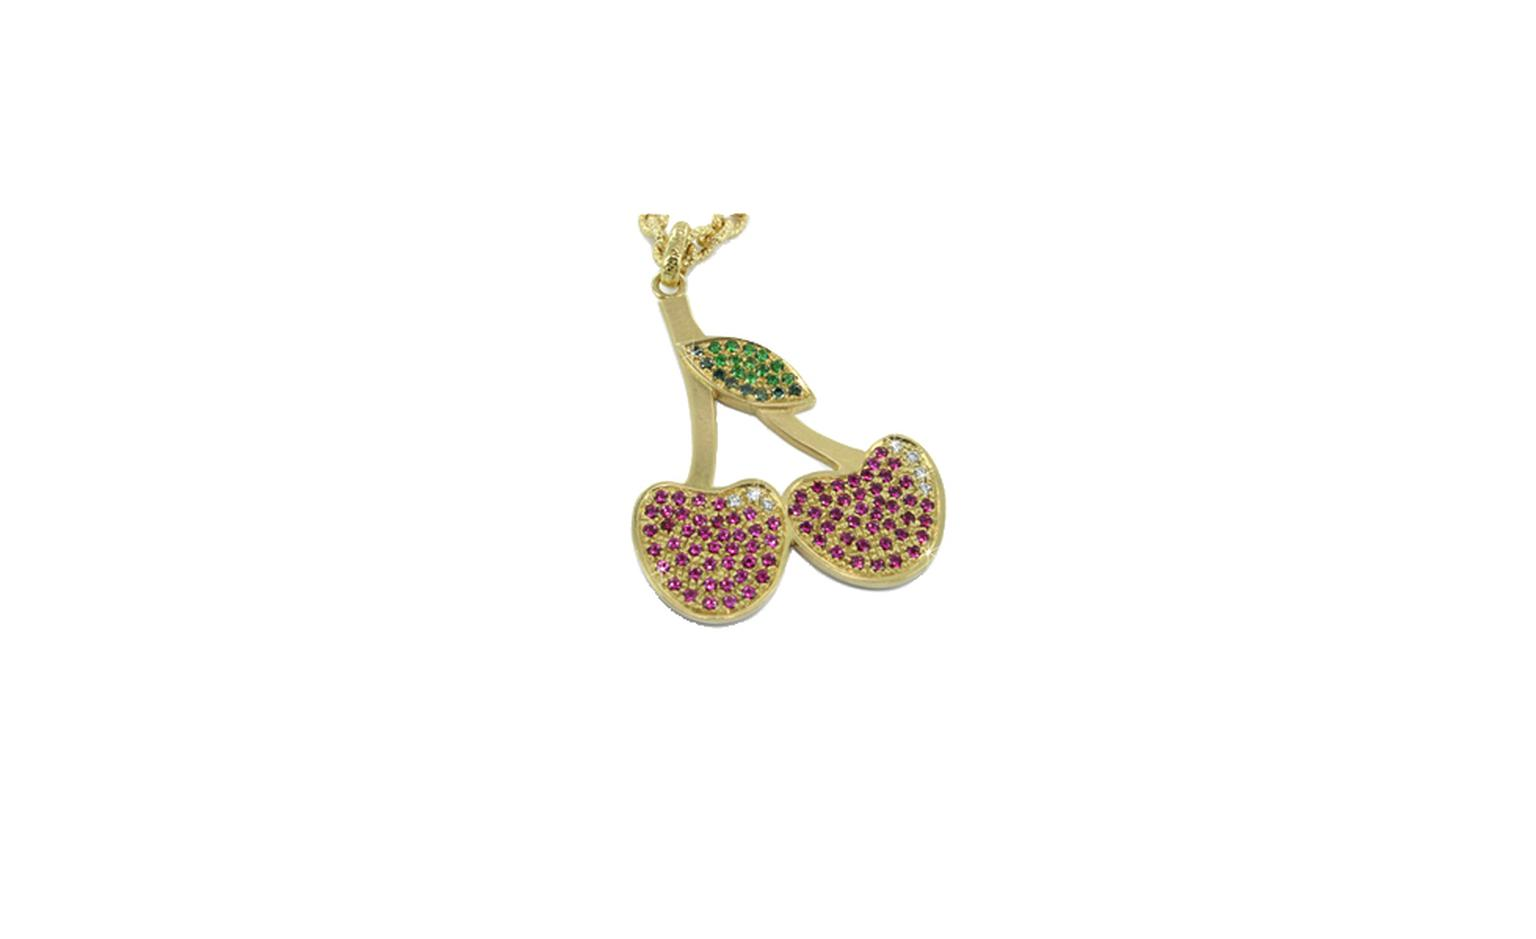 Carolina Bucci, Cherry pendant, yellow gold with rubies, sapphires, diamonds and emeralds £2,825